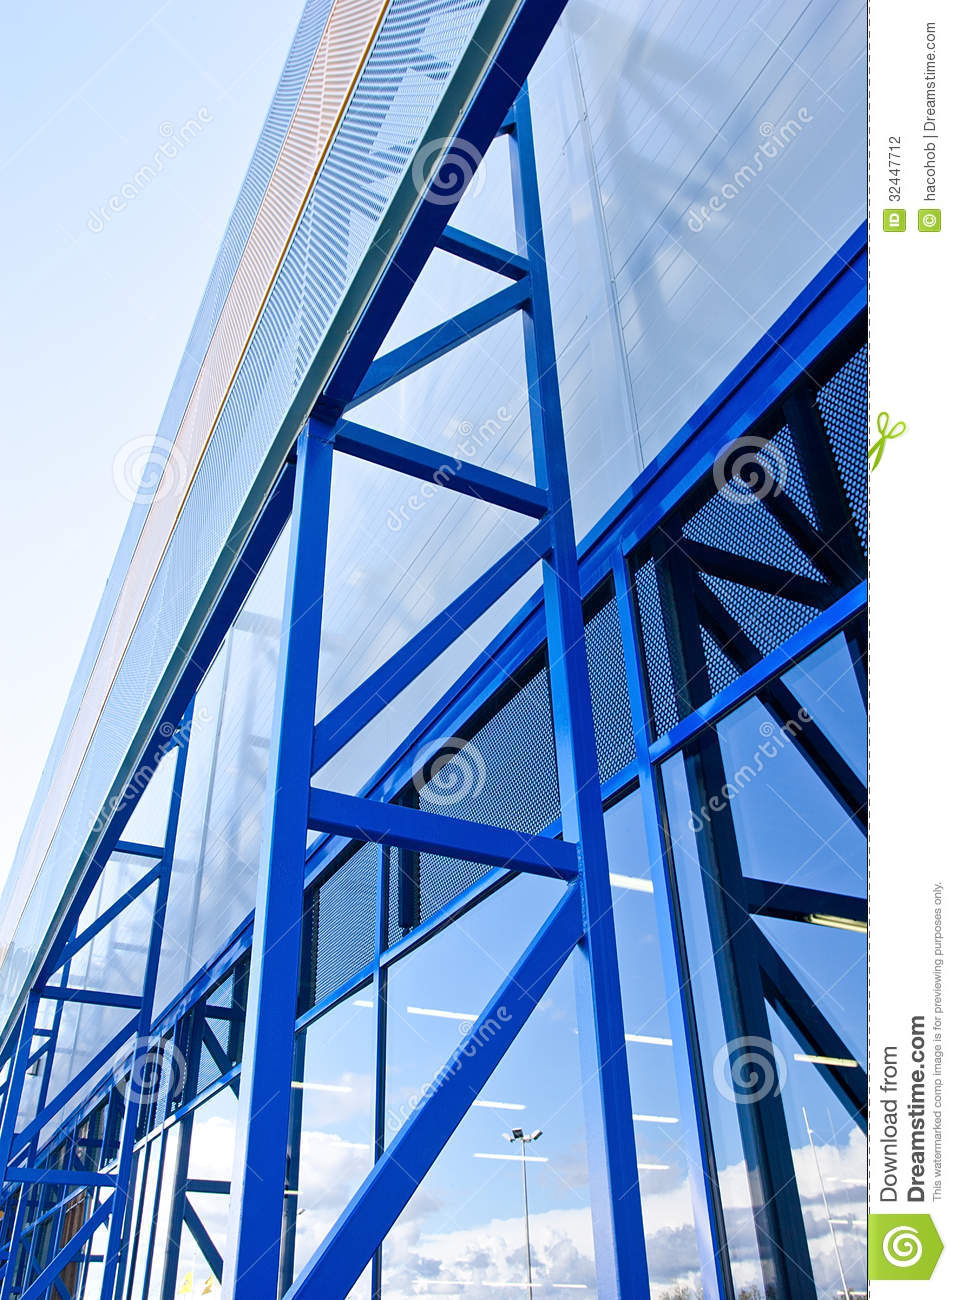 Industrial Metal Building Facade